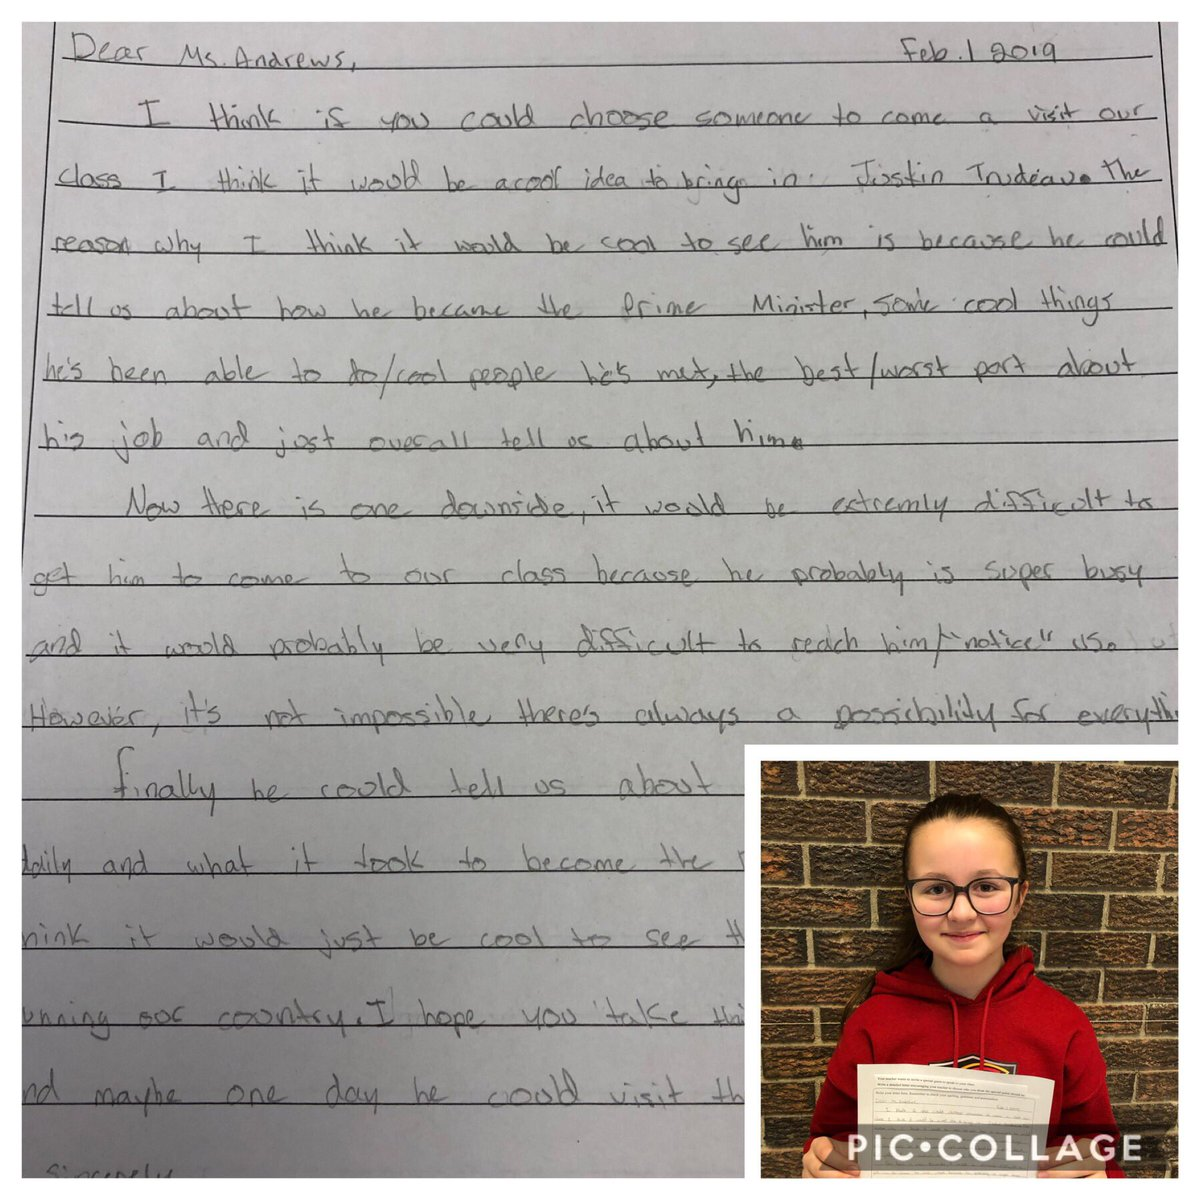 """Hey @JustinTrudeau please meet Ava who wonders if you are too busy to """"notice"""" us at our amazing school @StMartinOCSB. She wrote a great letter detailing a famous person she would like to visit her class and she hopes it's you! #PMO #Studentvoice"""